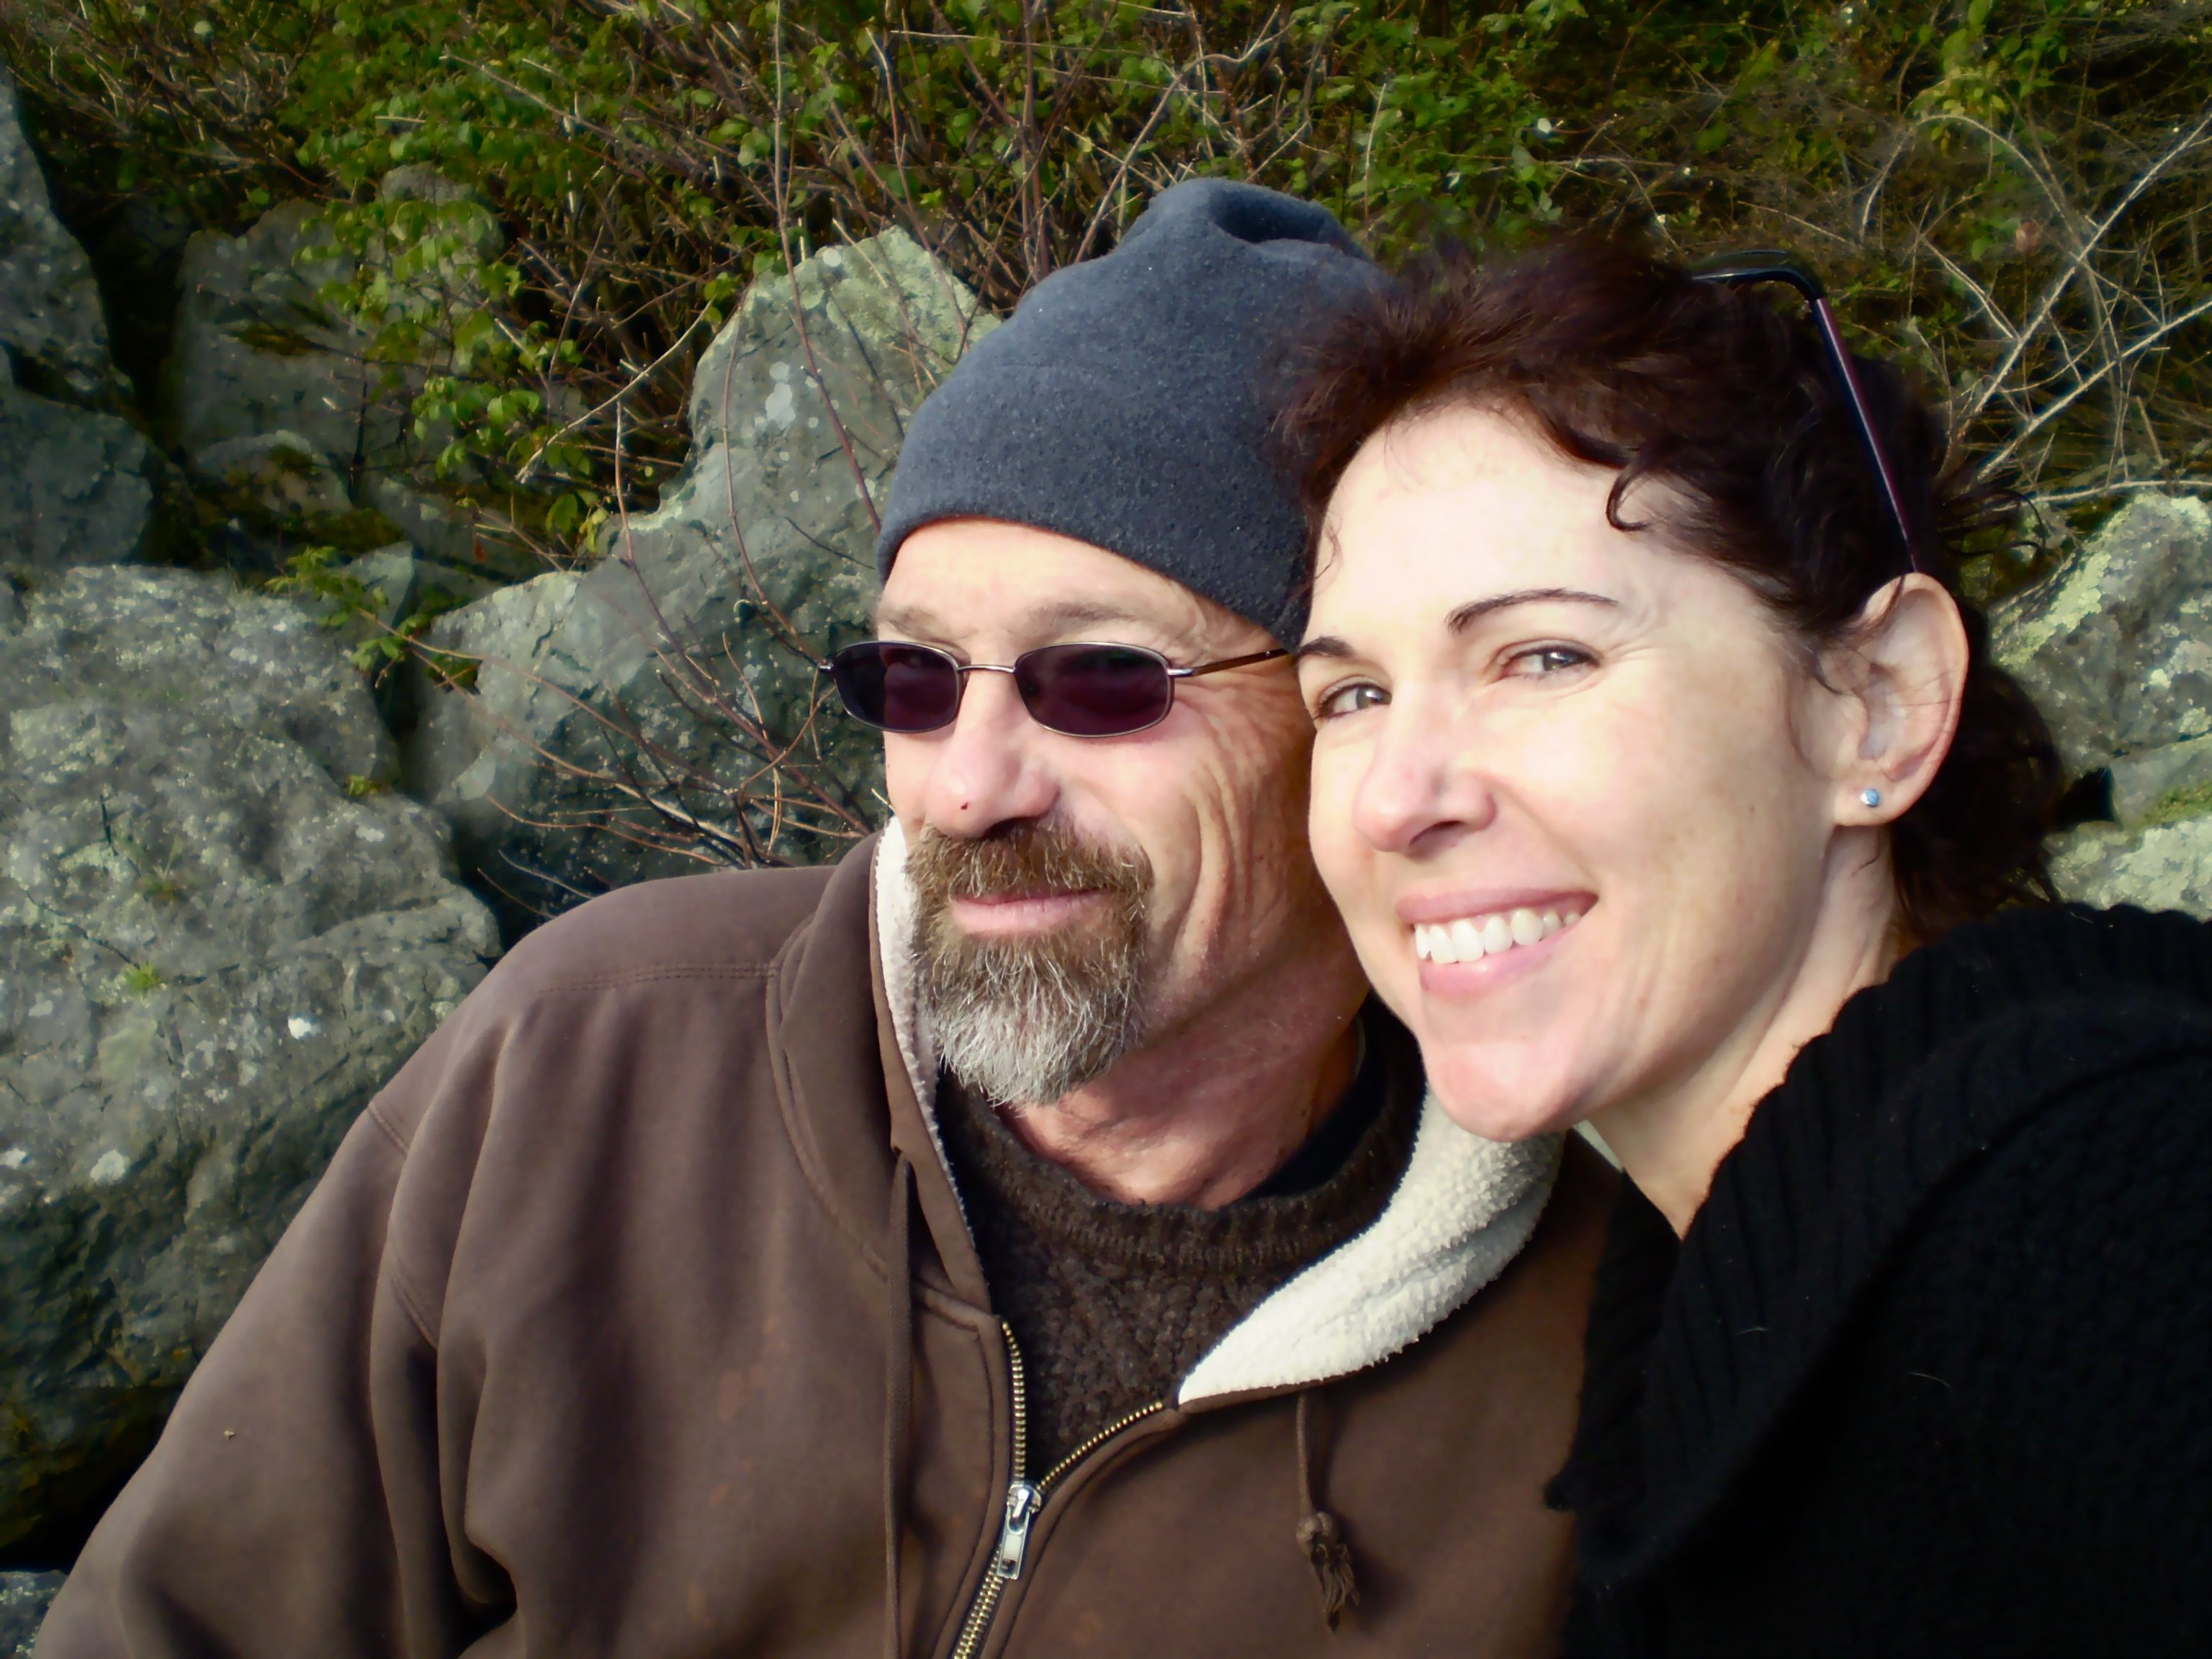 'We were soul mates': Caring for a best friend until the end